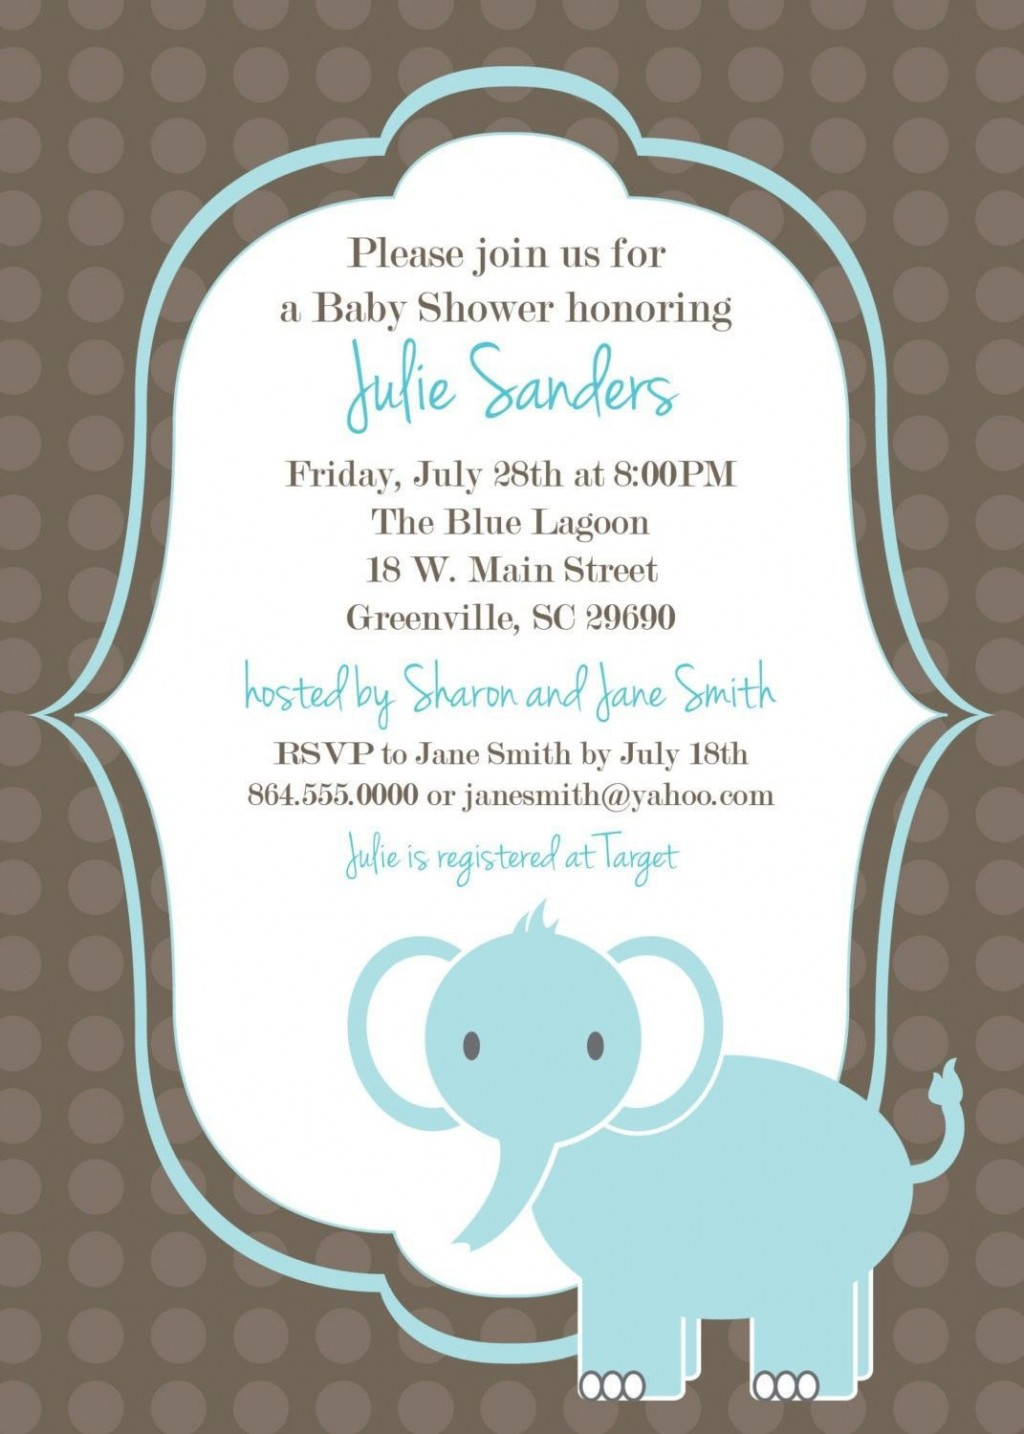 006 Unusual Free Baby Shower Invitation Template For Boy High Def Large